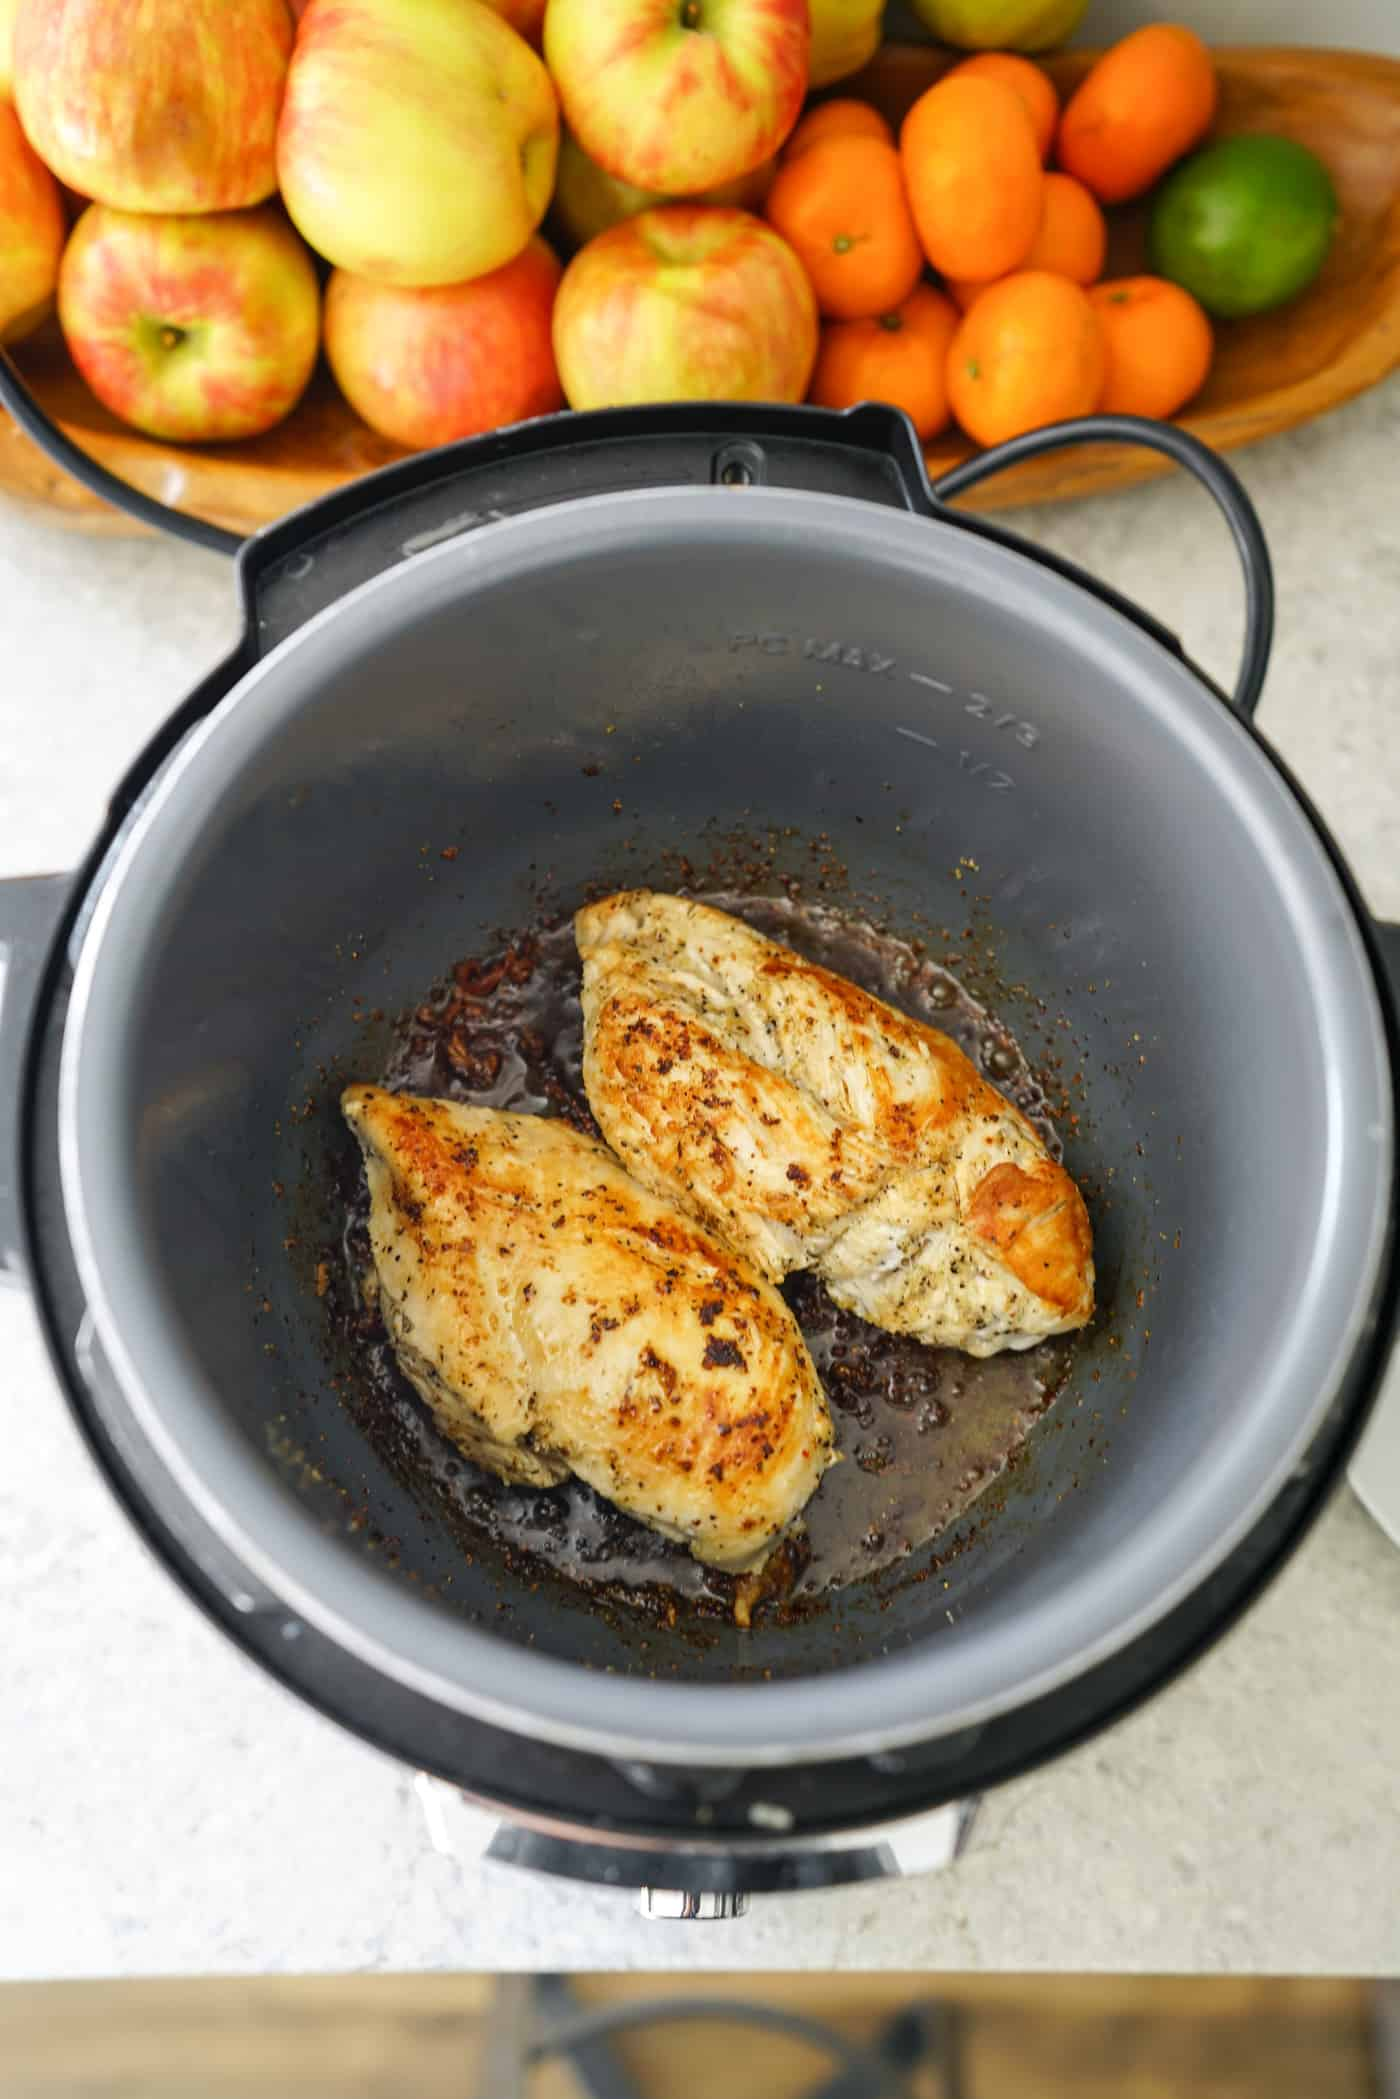 An Instant Pot with two boneless chicken breasts on the saute mode.